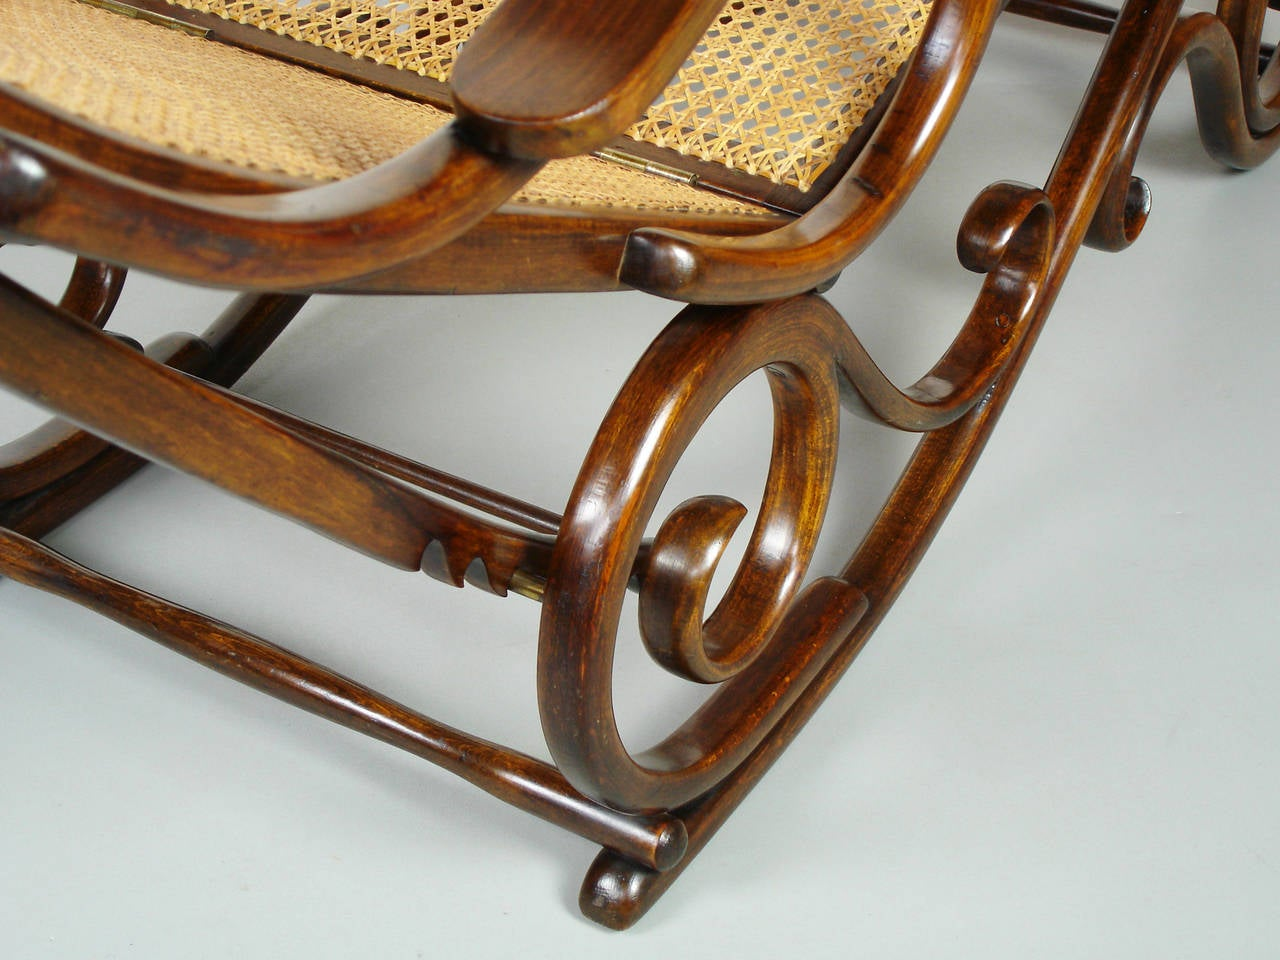 Bent wood chaise longue attributed to thonet at 1stdibs for Chaise longue 5 plazas